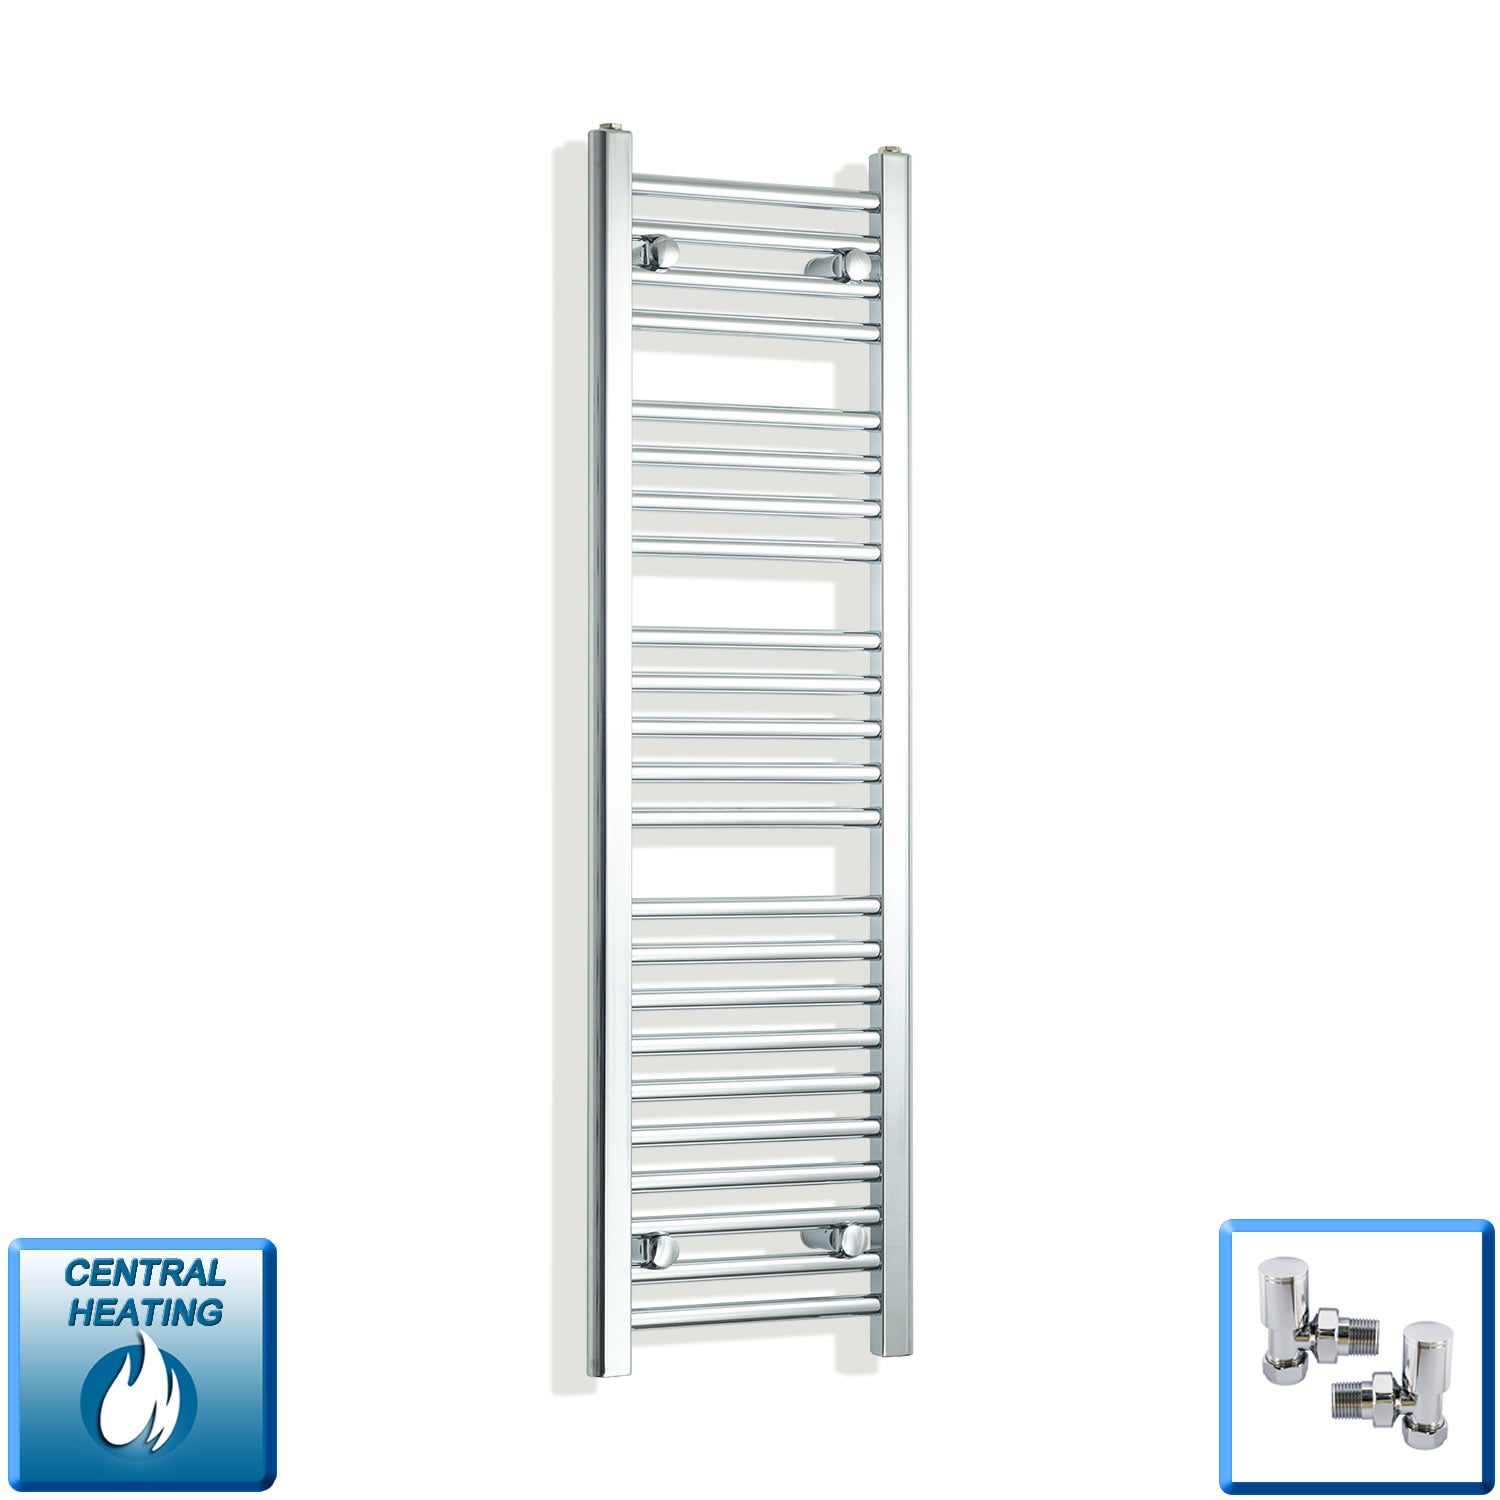 300mm Wide 1400mm High Flat Chrome Heated Towel Rail Radiator,With Angled Valve